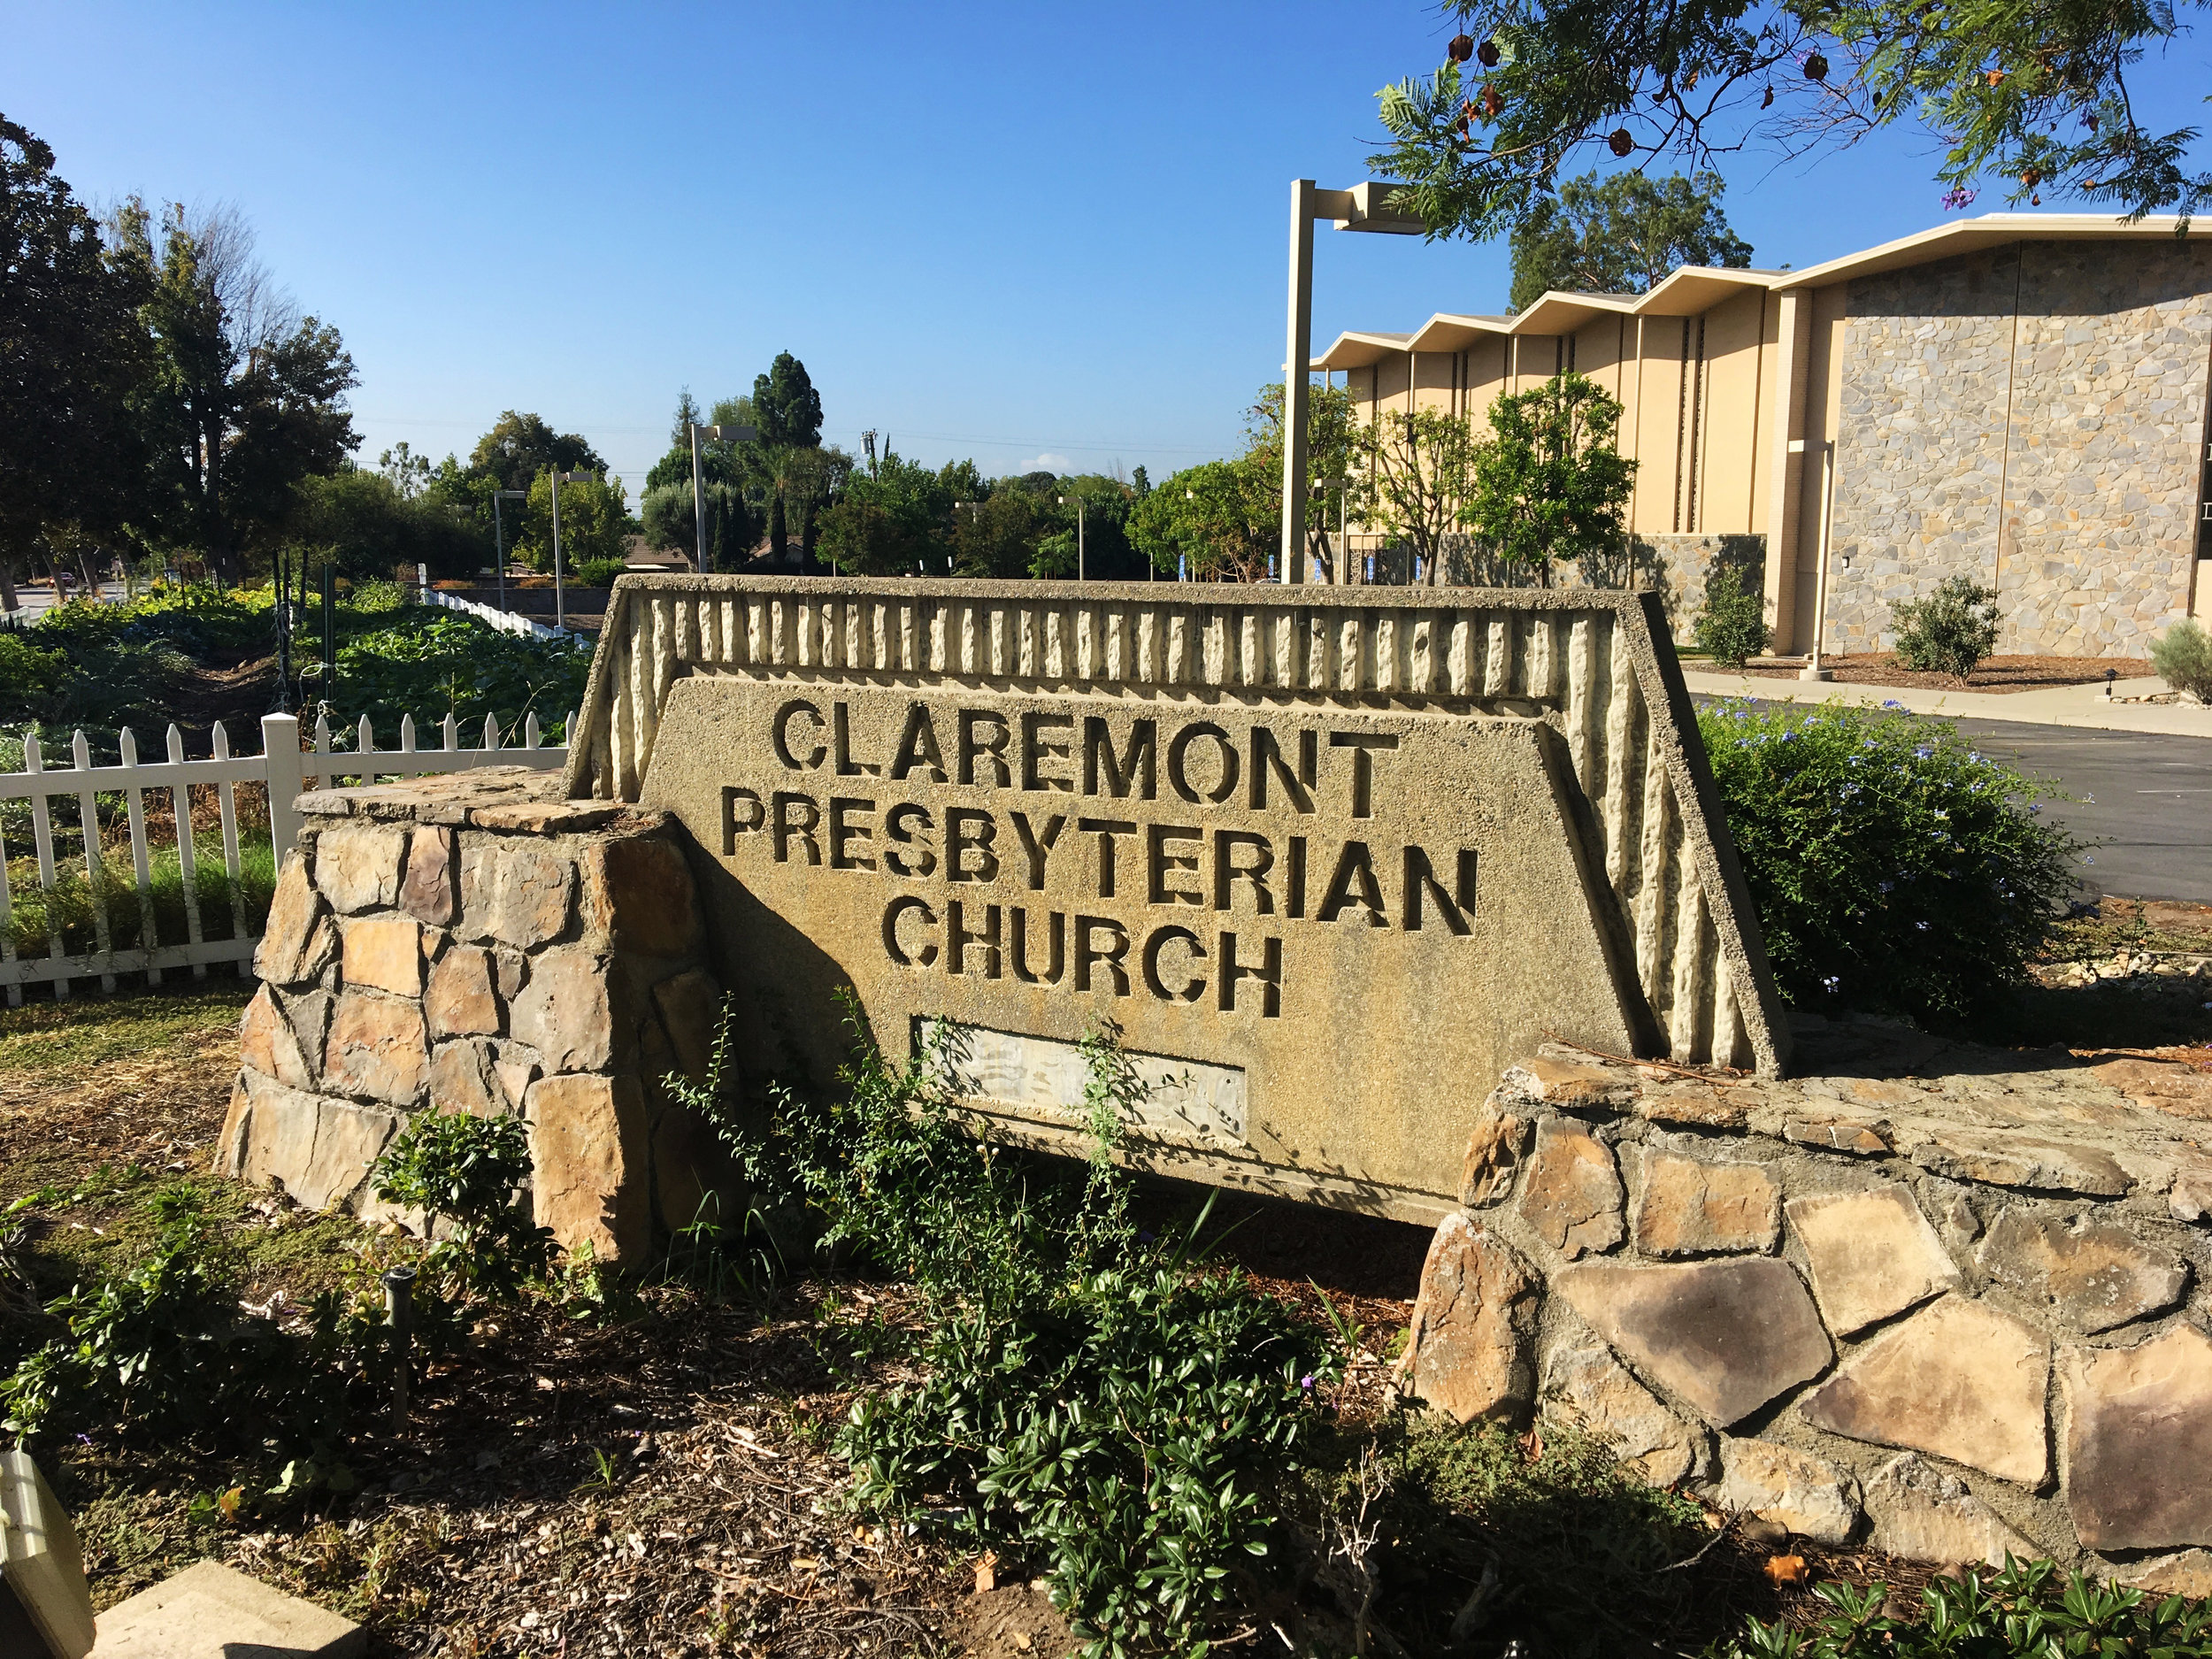 claremont-presbyterian-church-campus-tour-sign-mountain.jpg